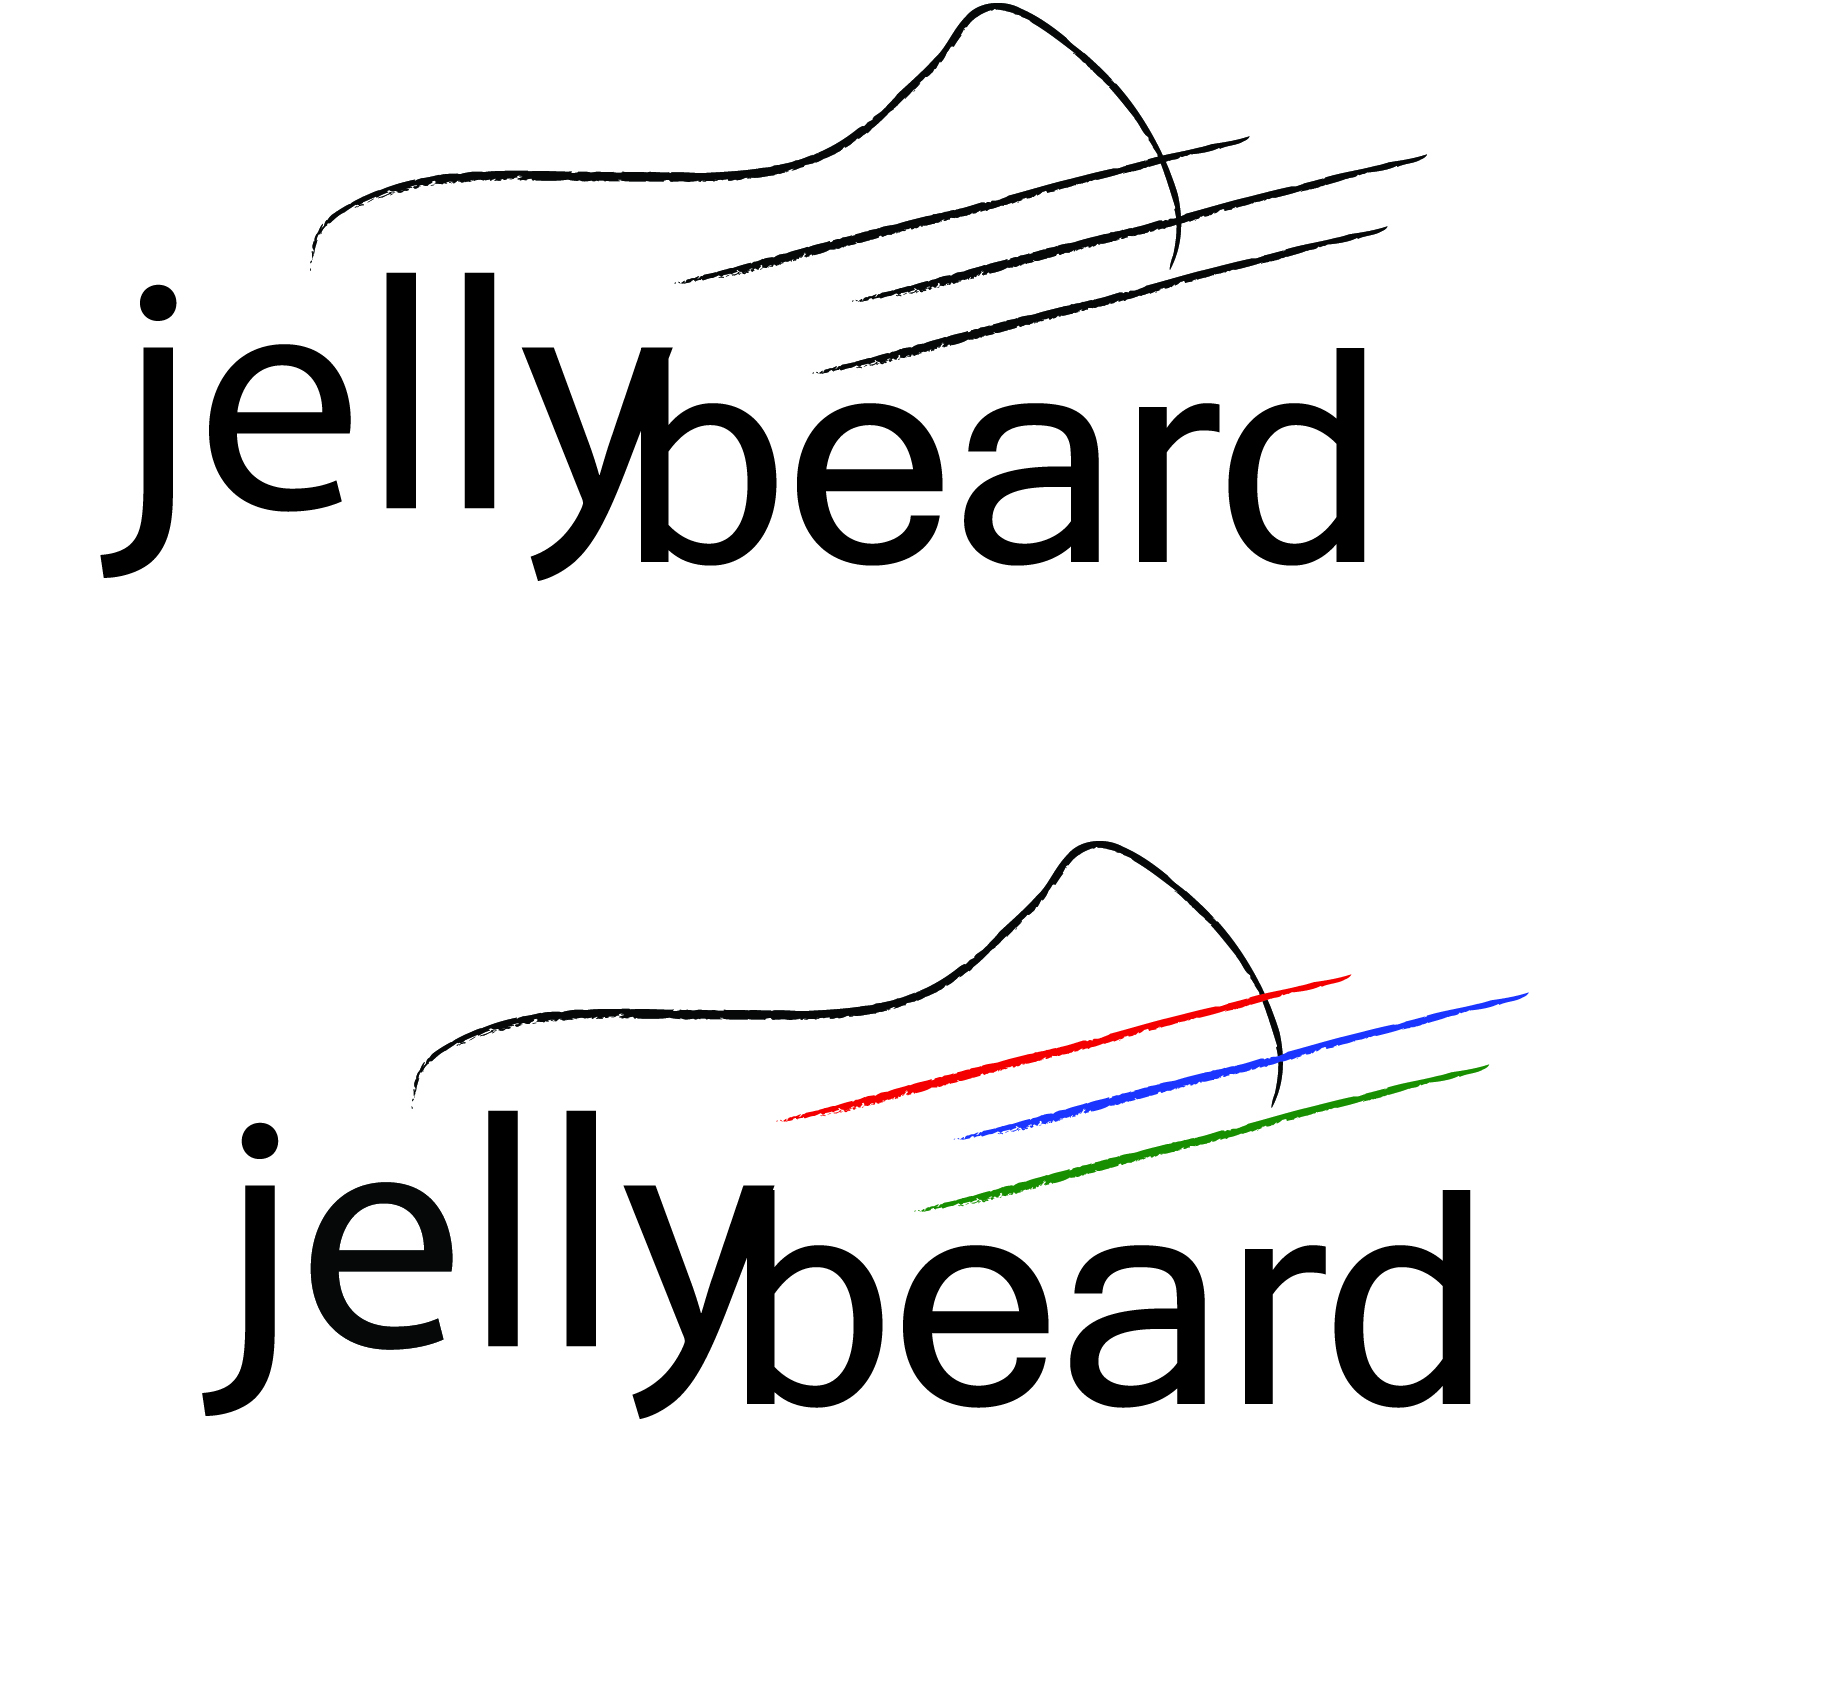 Logo Design by V Anil Yadavv - Entry No. 52 in the Logo Design Contest jellybeard Logo Design.